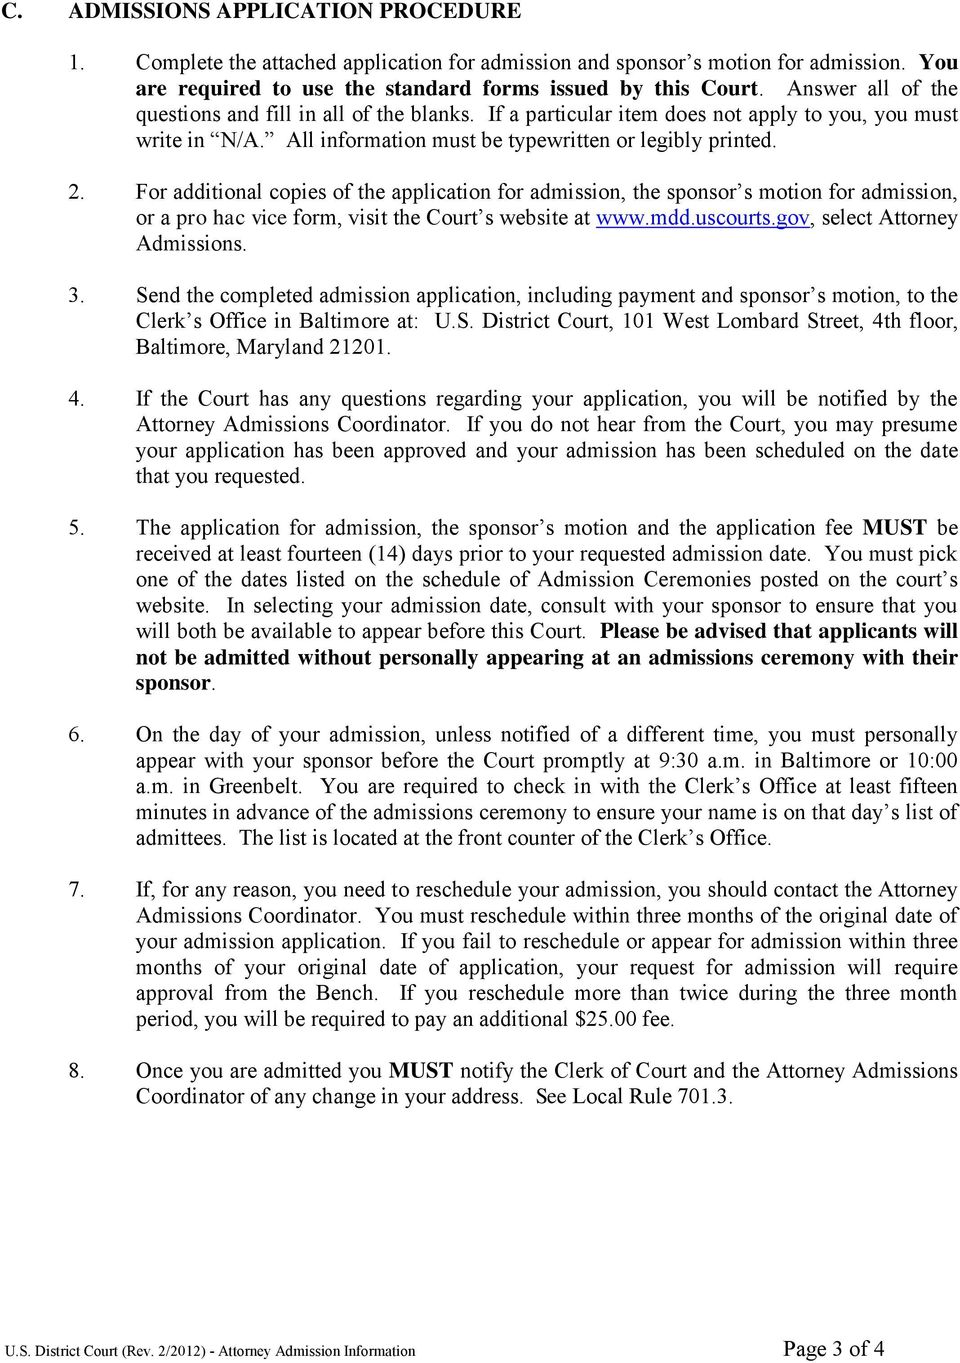 For additional copies of the application for admission, the sponsor s motion for admission, or a pro hac vice form, visit the Court s website at www.mdd.uscourts.gov, select Attorney Admissions. 3.